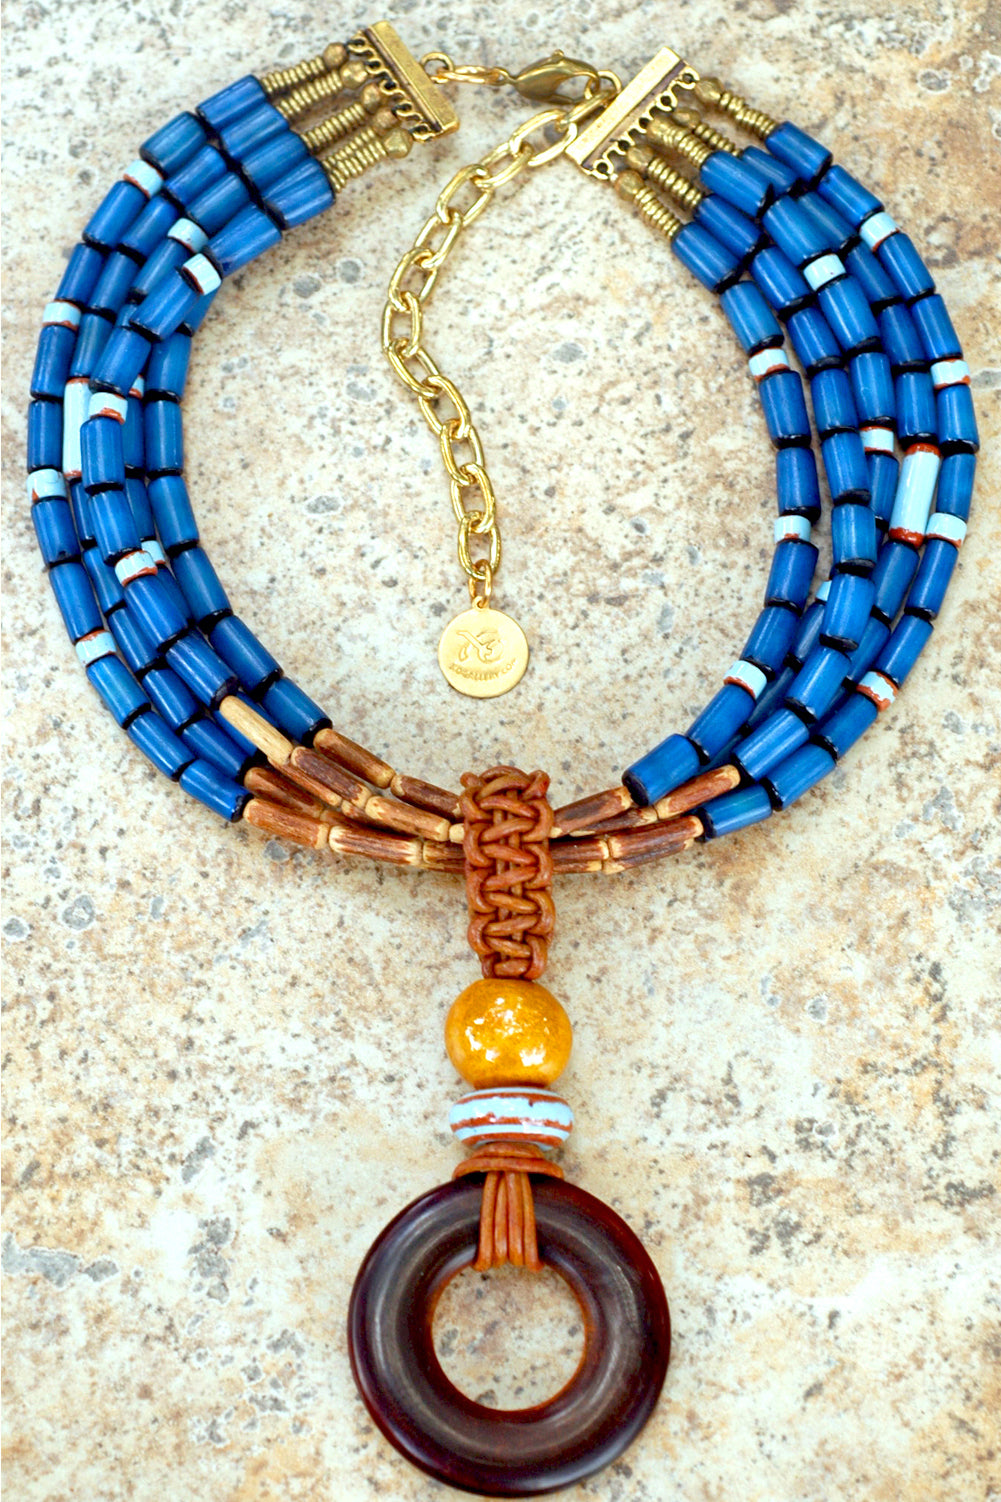 Island Inspired Blue Buri Seed, Bamboo, Leather & Horn Pendant Necklace